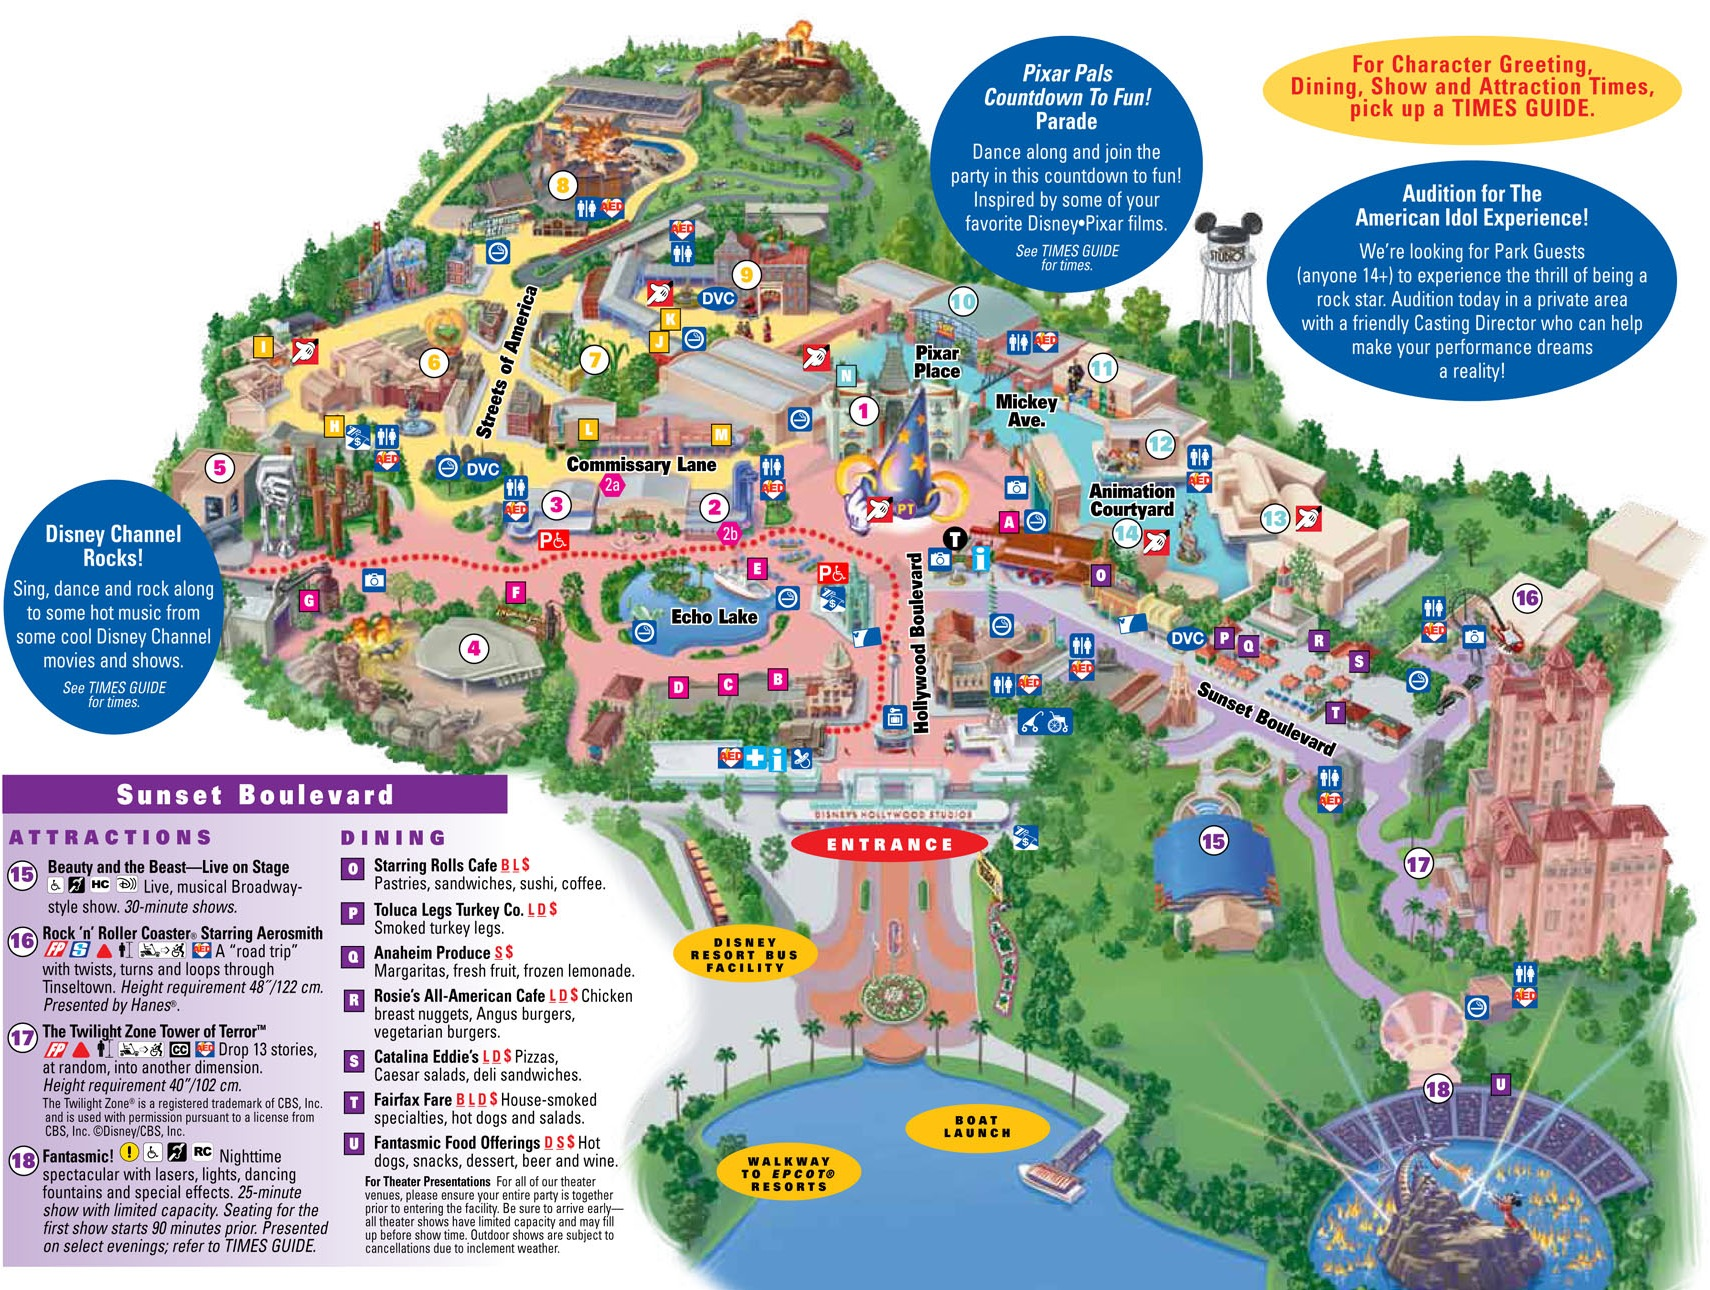 Disney\'s New Maps - A Closer Look - TouringPlans.com Blog